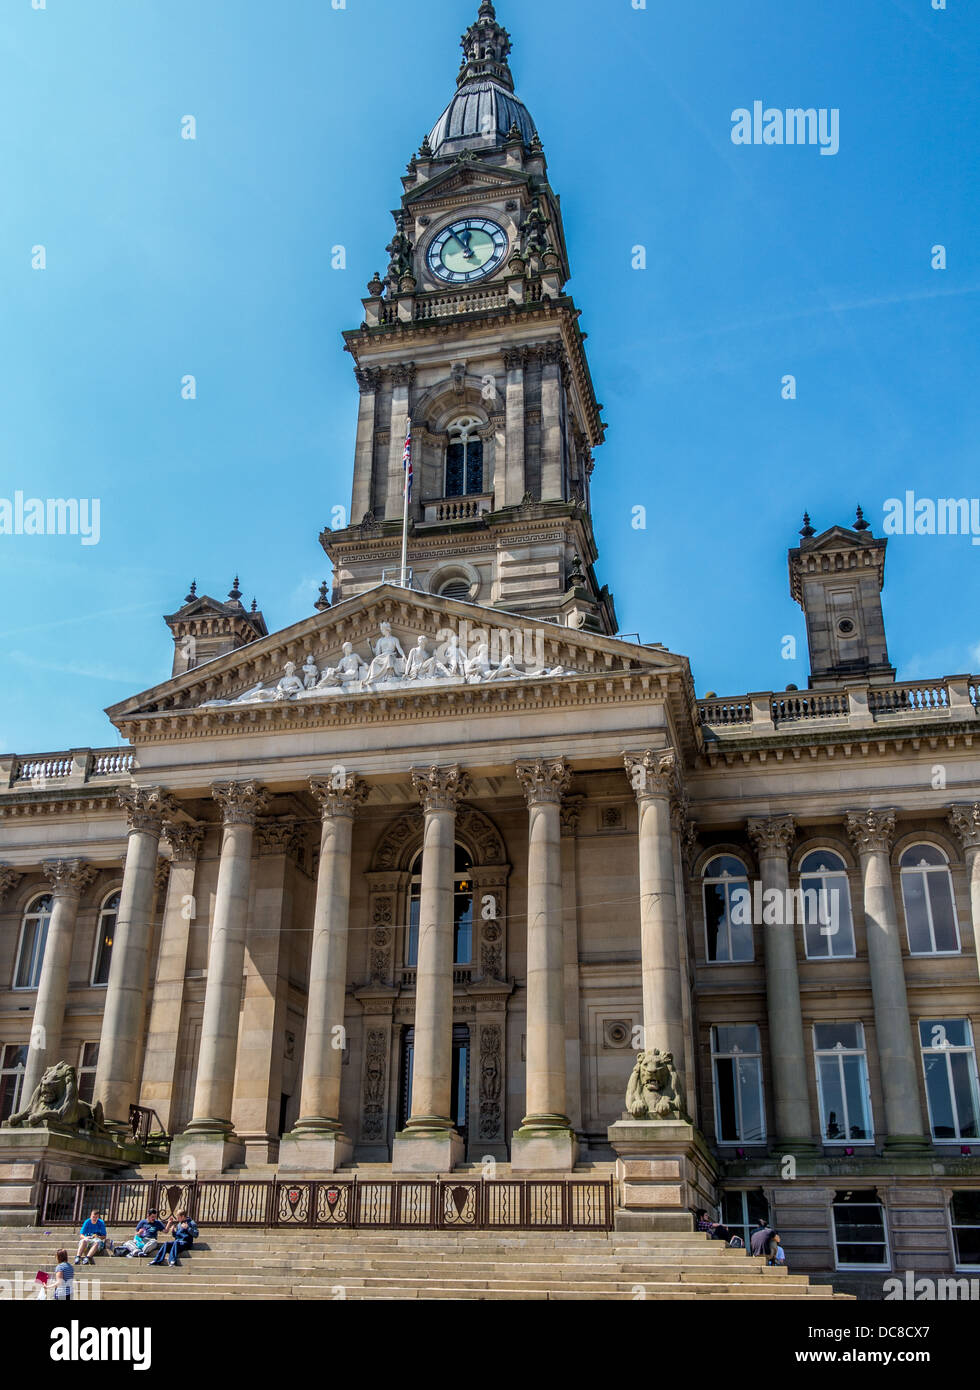 Bolton Town Hall showing clock tower - Stock Image